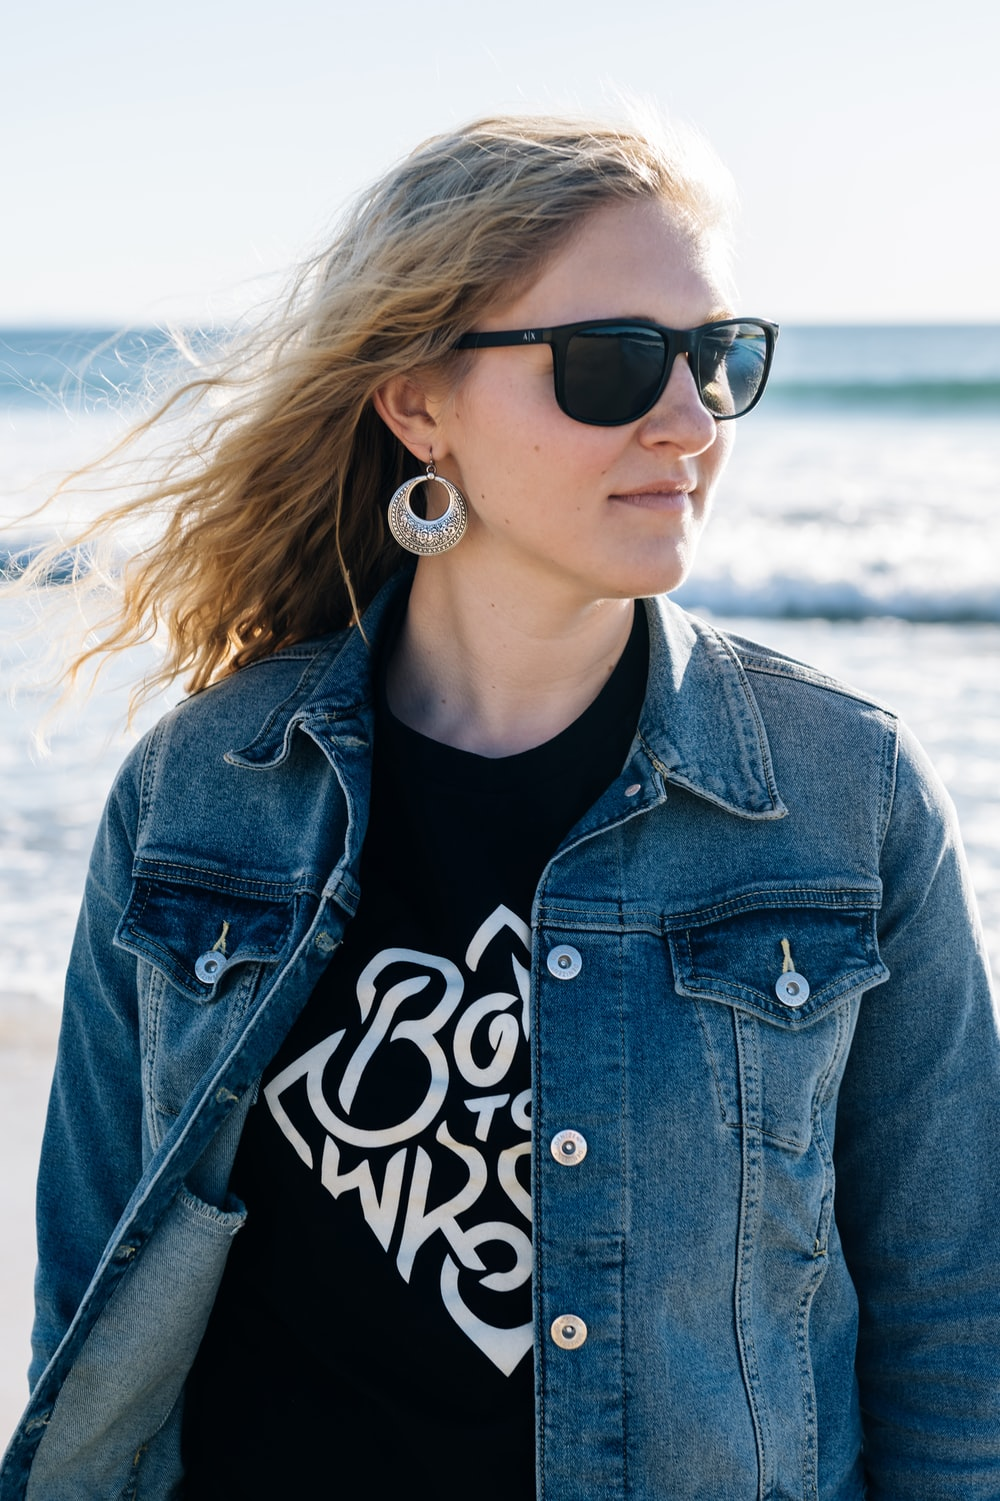 selective focus photography of woman wearing blue denim jacket standing on seashore